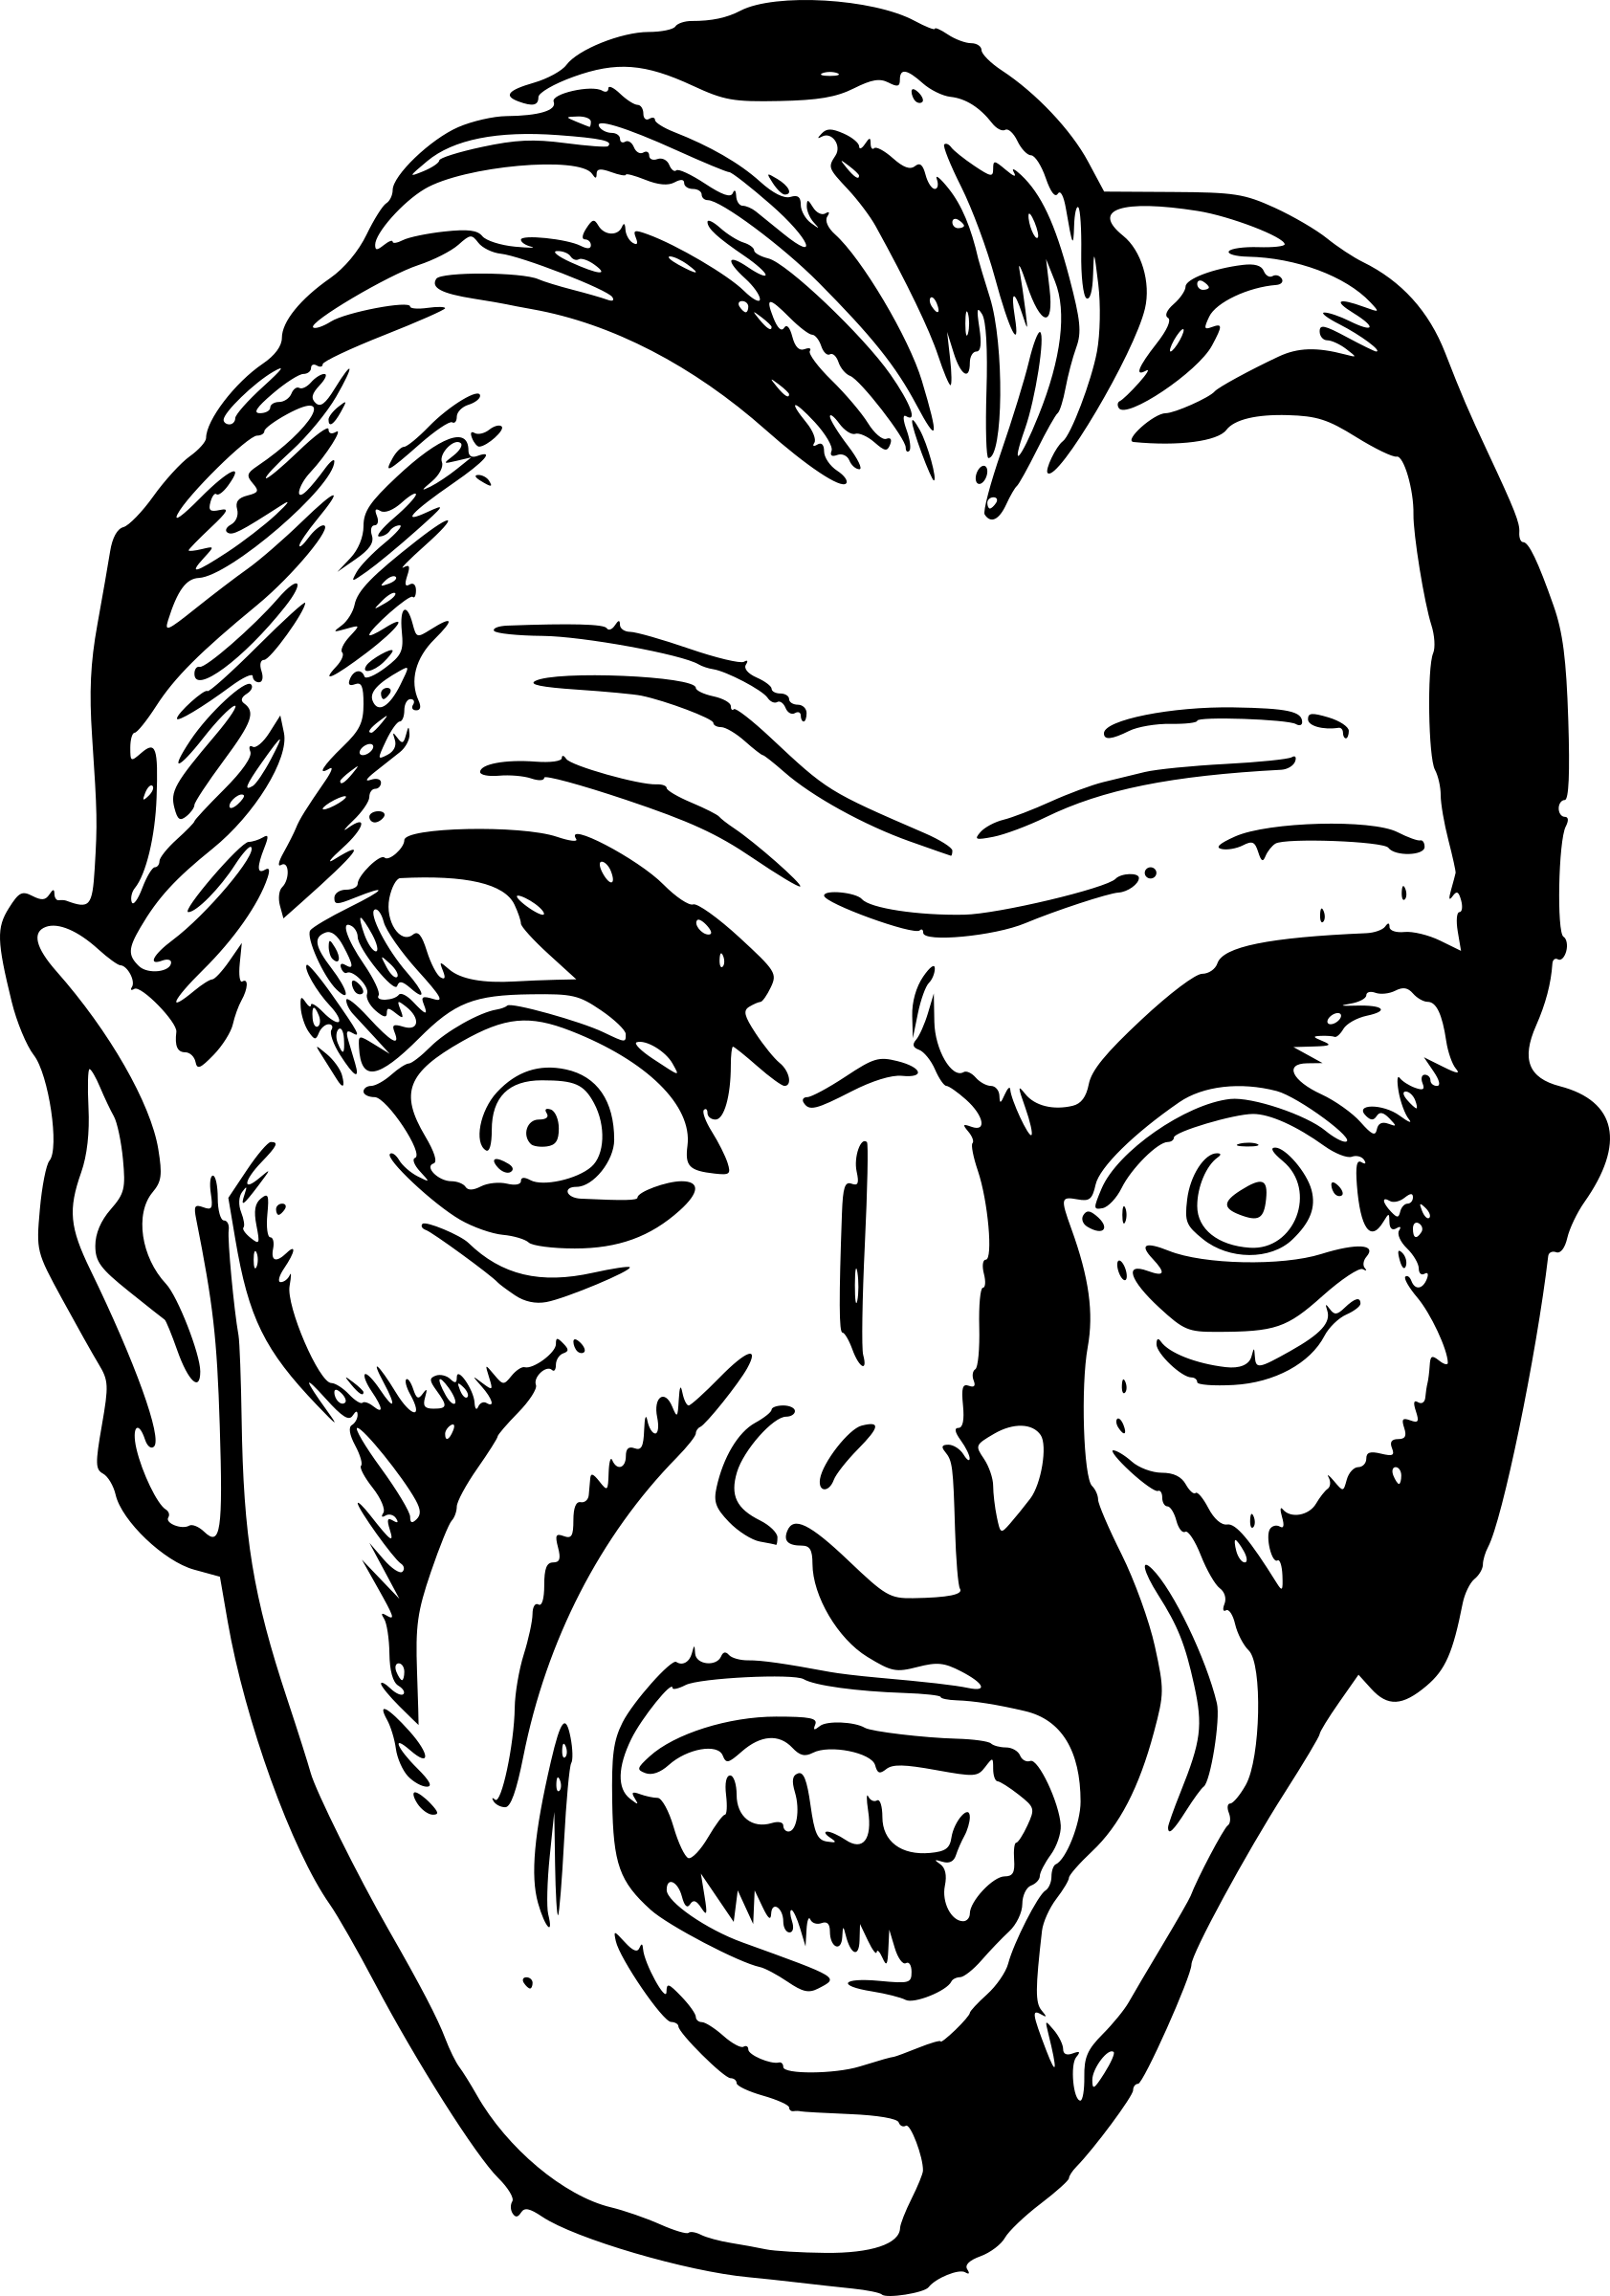 Vampire clipart. Transparent png stickpng people